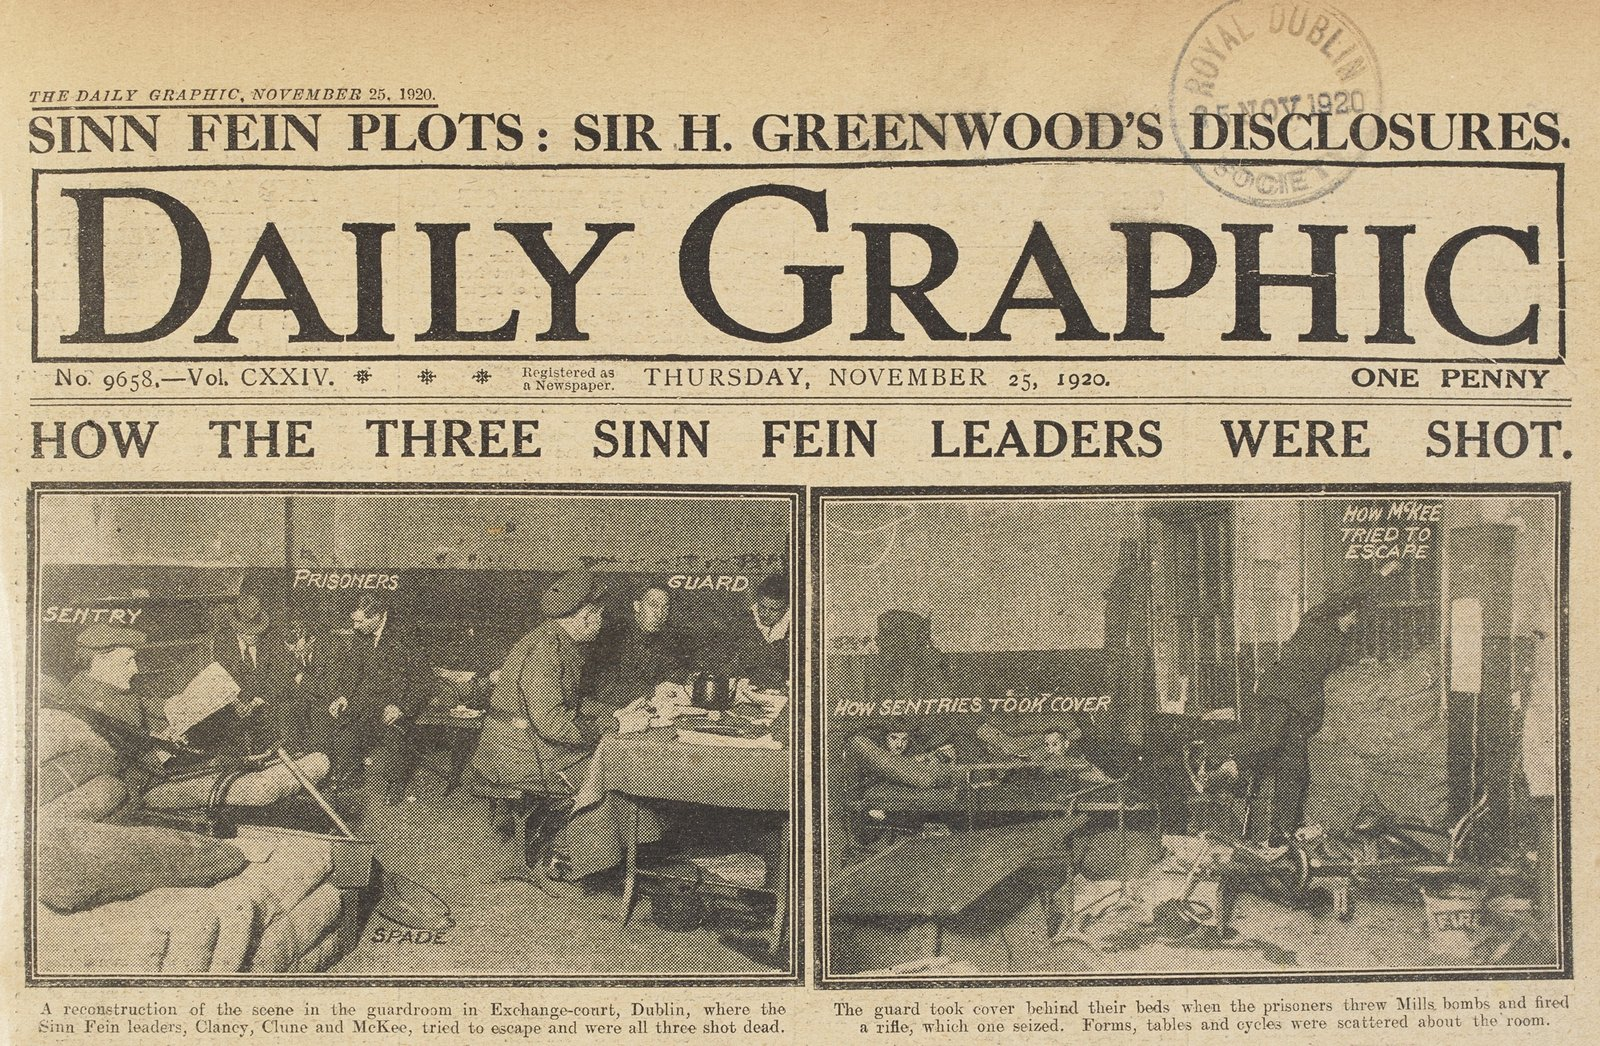 Image - Highly choreographed reconstructions of the men's alleged escape attempt were publicised by the British. Daily Graphic, 25 November 1920, courtesy of National Library of Ireland